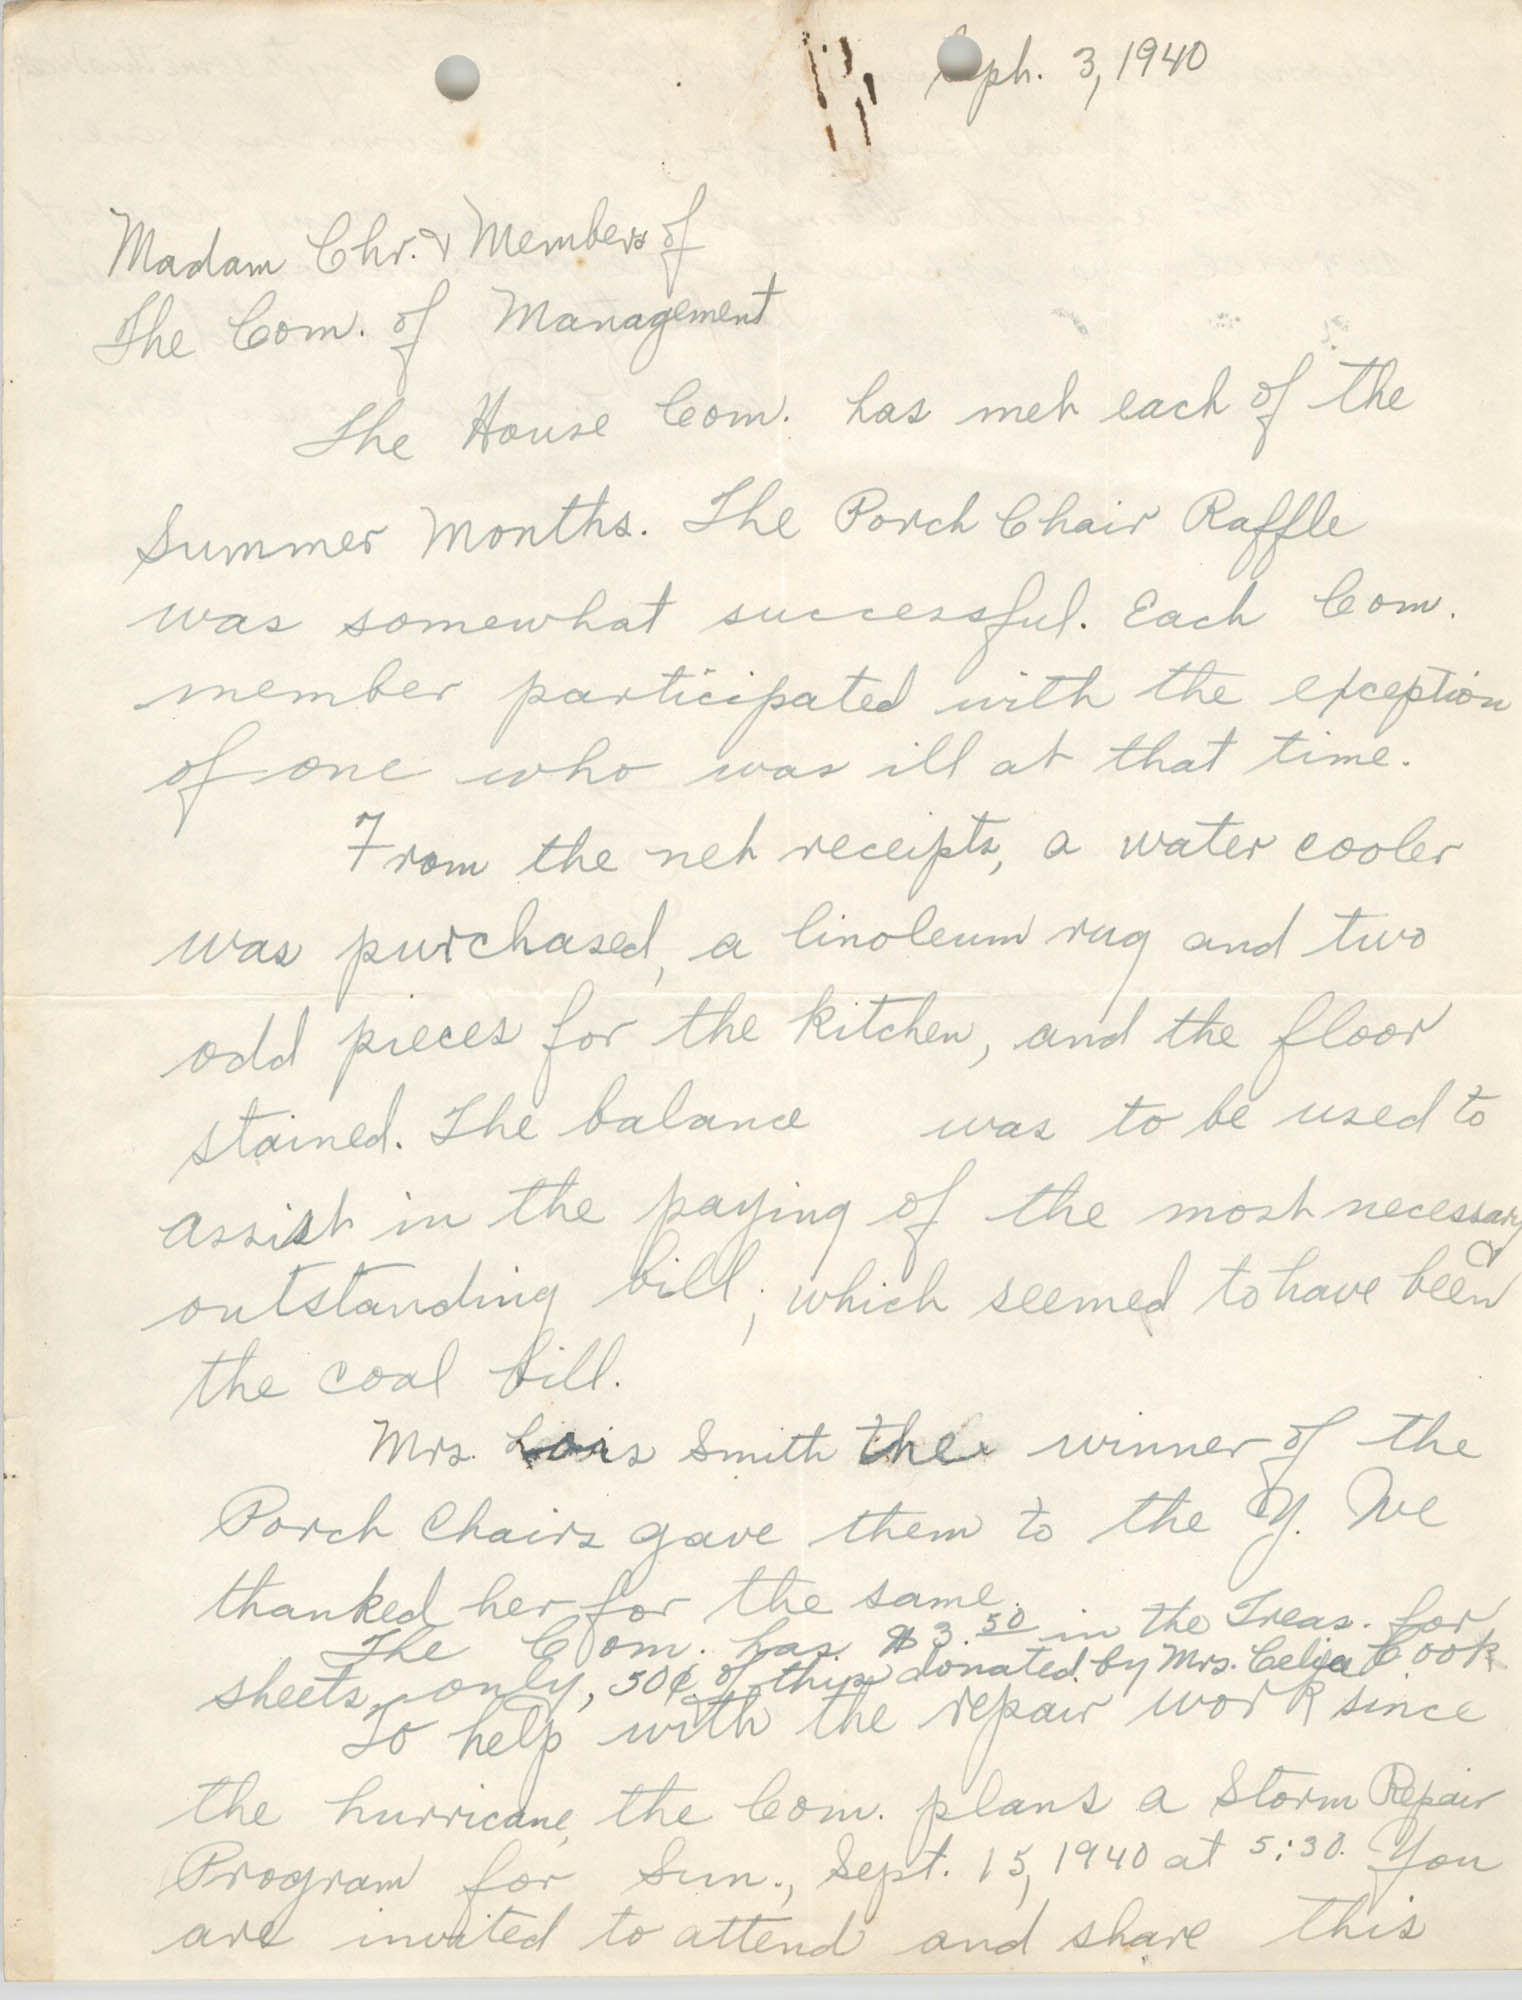 Letter from Ella L. Jones to Committee of Management, Coming Street Y.W.C.A., September 3, 1940